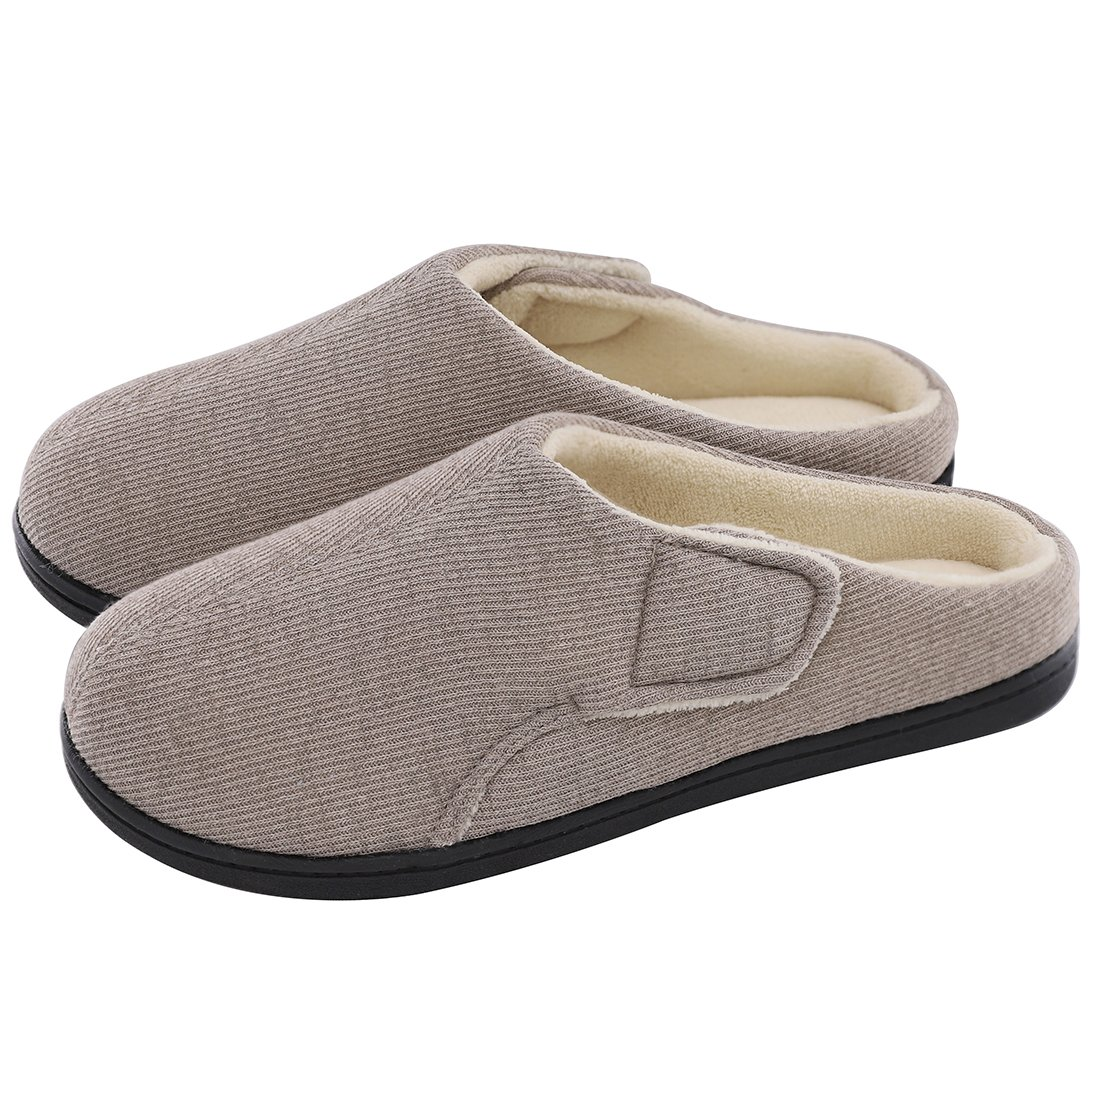 ULTRAIDEAS Women's Comfort Memory Foam Terry Cloth Slippers House Slippers with Adjustable Flap Closure